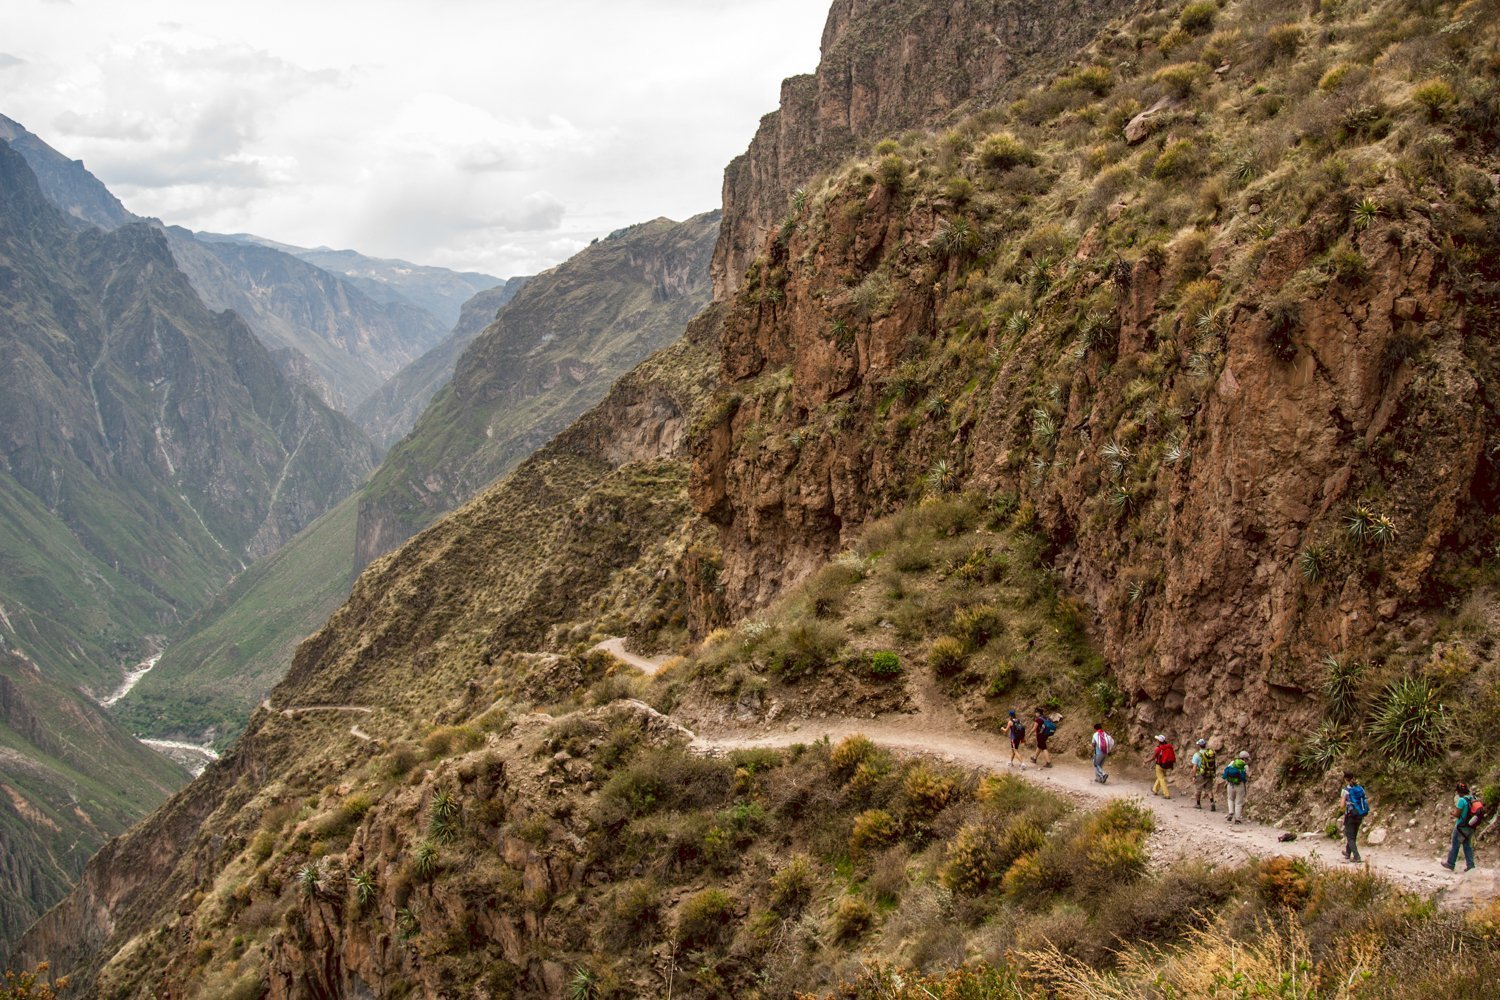 Hiking through the Colca Canyon by Robyn Boyd